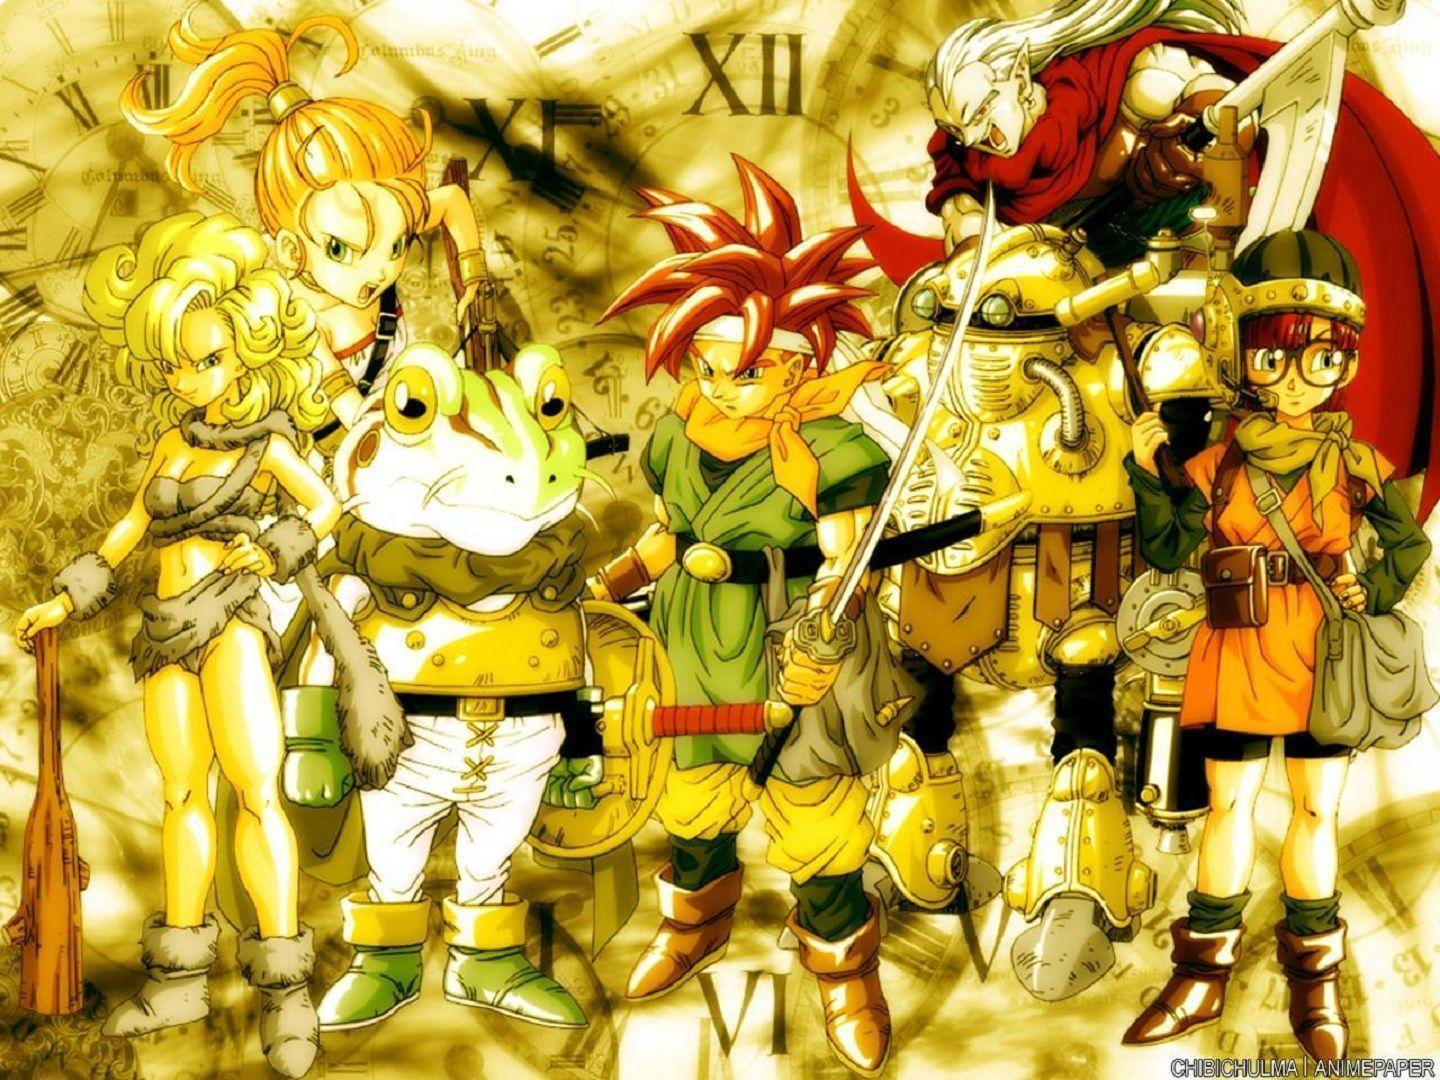 Chrono Trigger Wallpapers - Wallpaper Cave